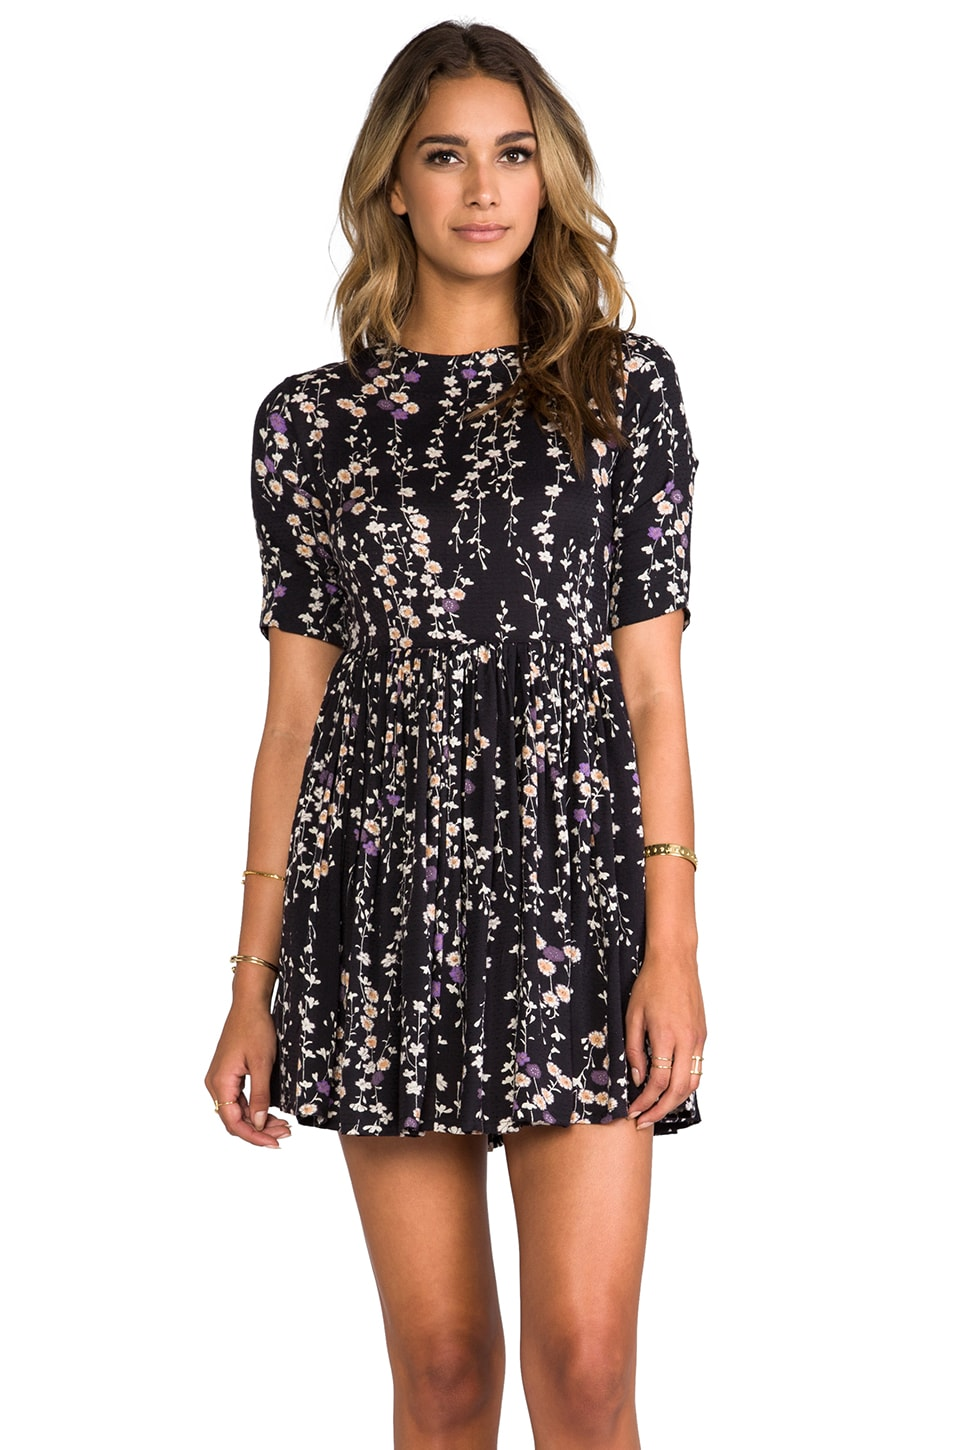 NEUW Victoria Sundress in Black Floral